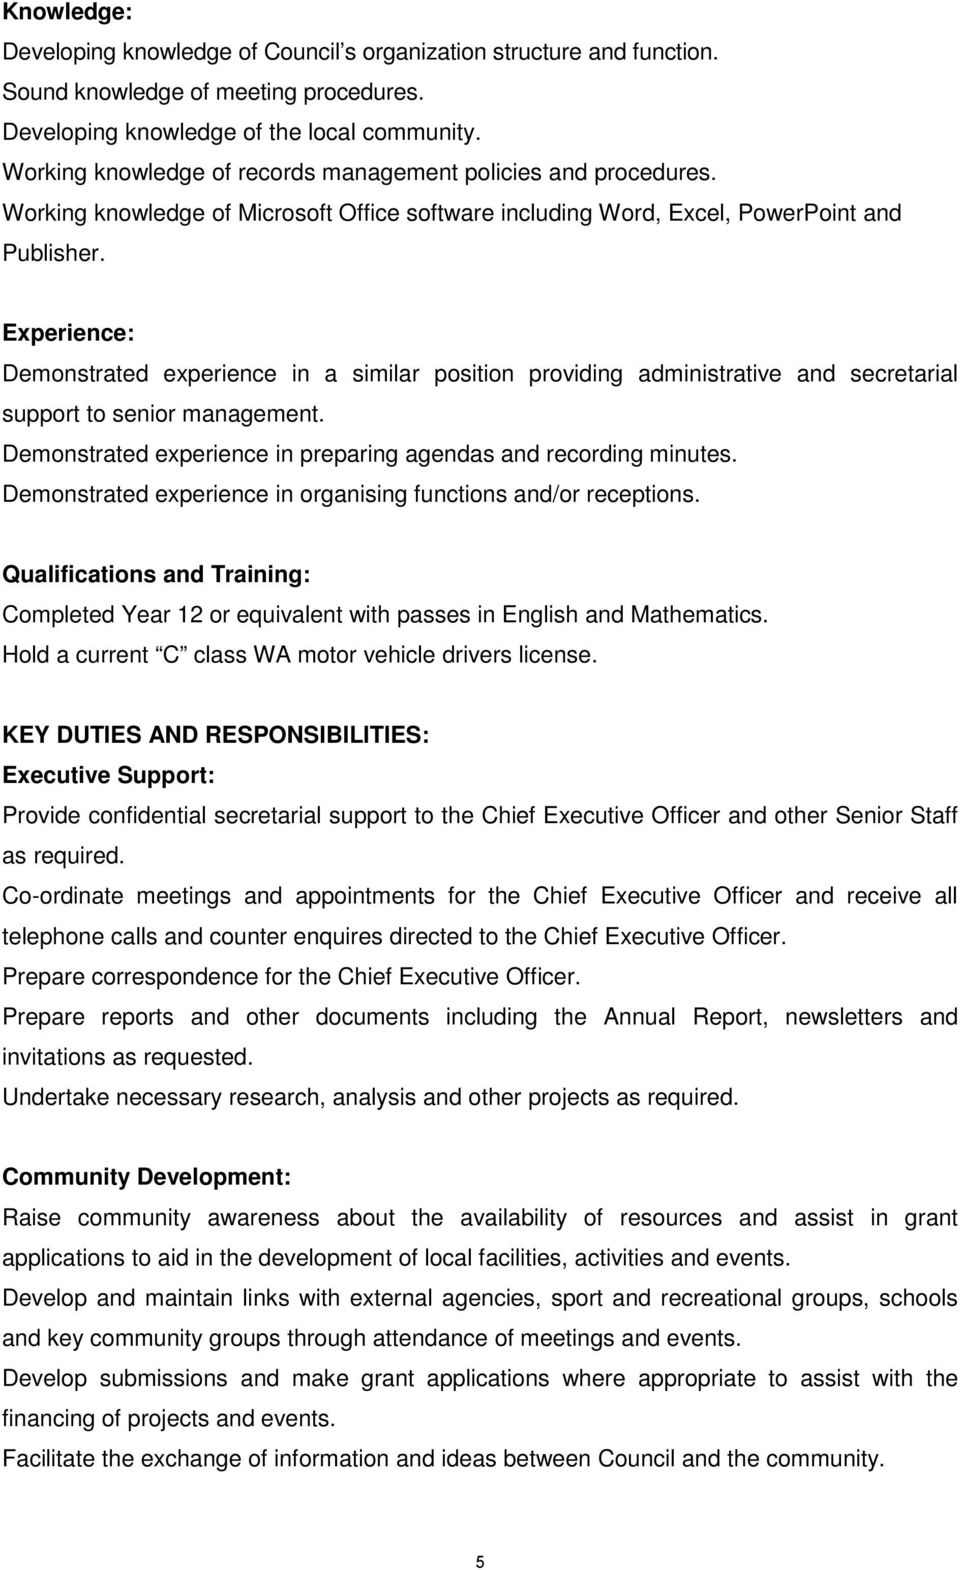 Experience: Demonstrated experience in a similar position providing administrative and secretarial support to senior management. Demonstrated experience in preparing agendas and recording minutes.